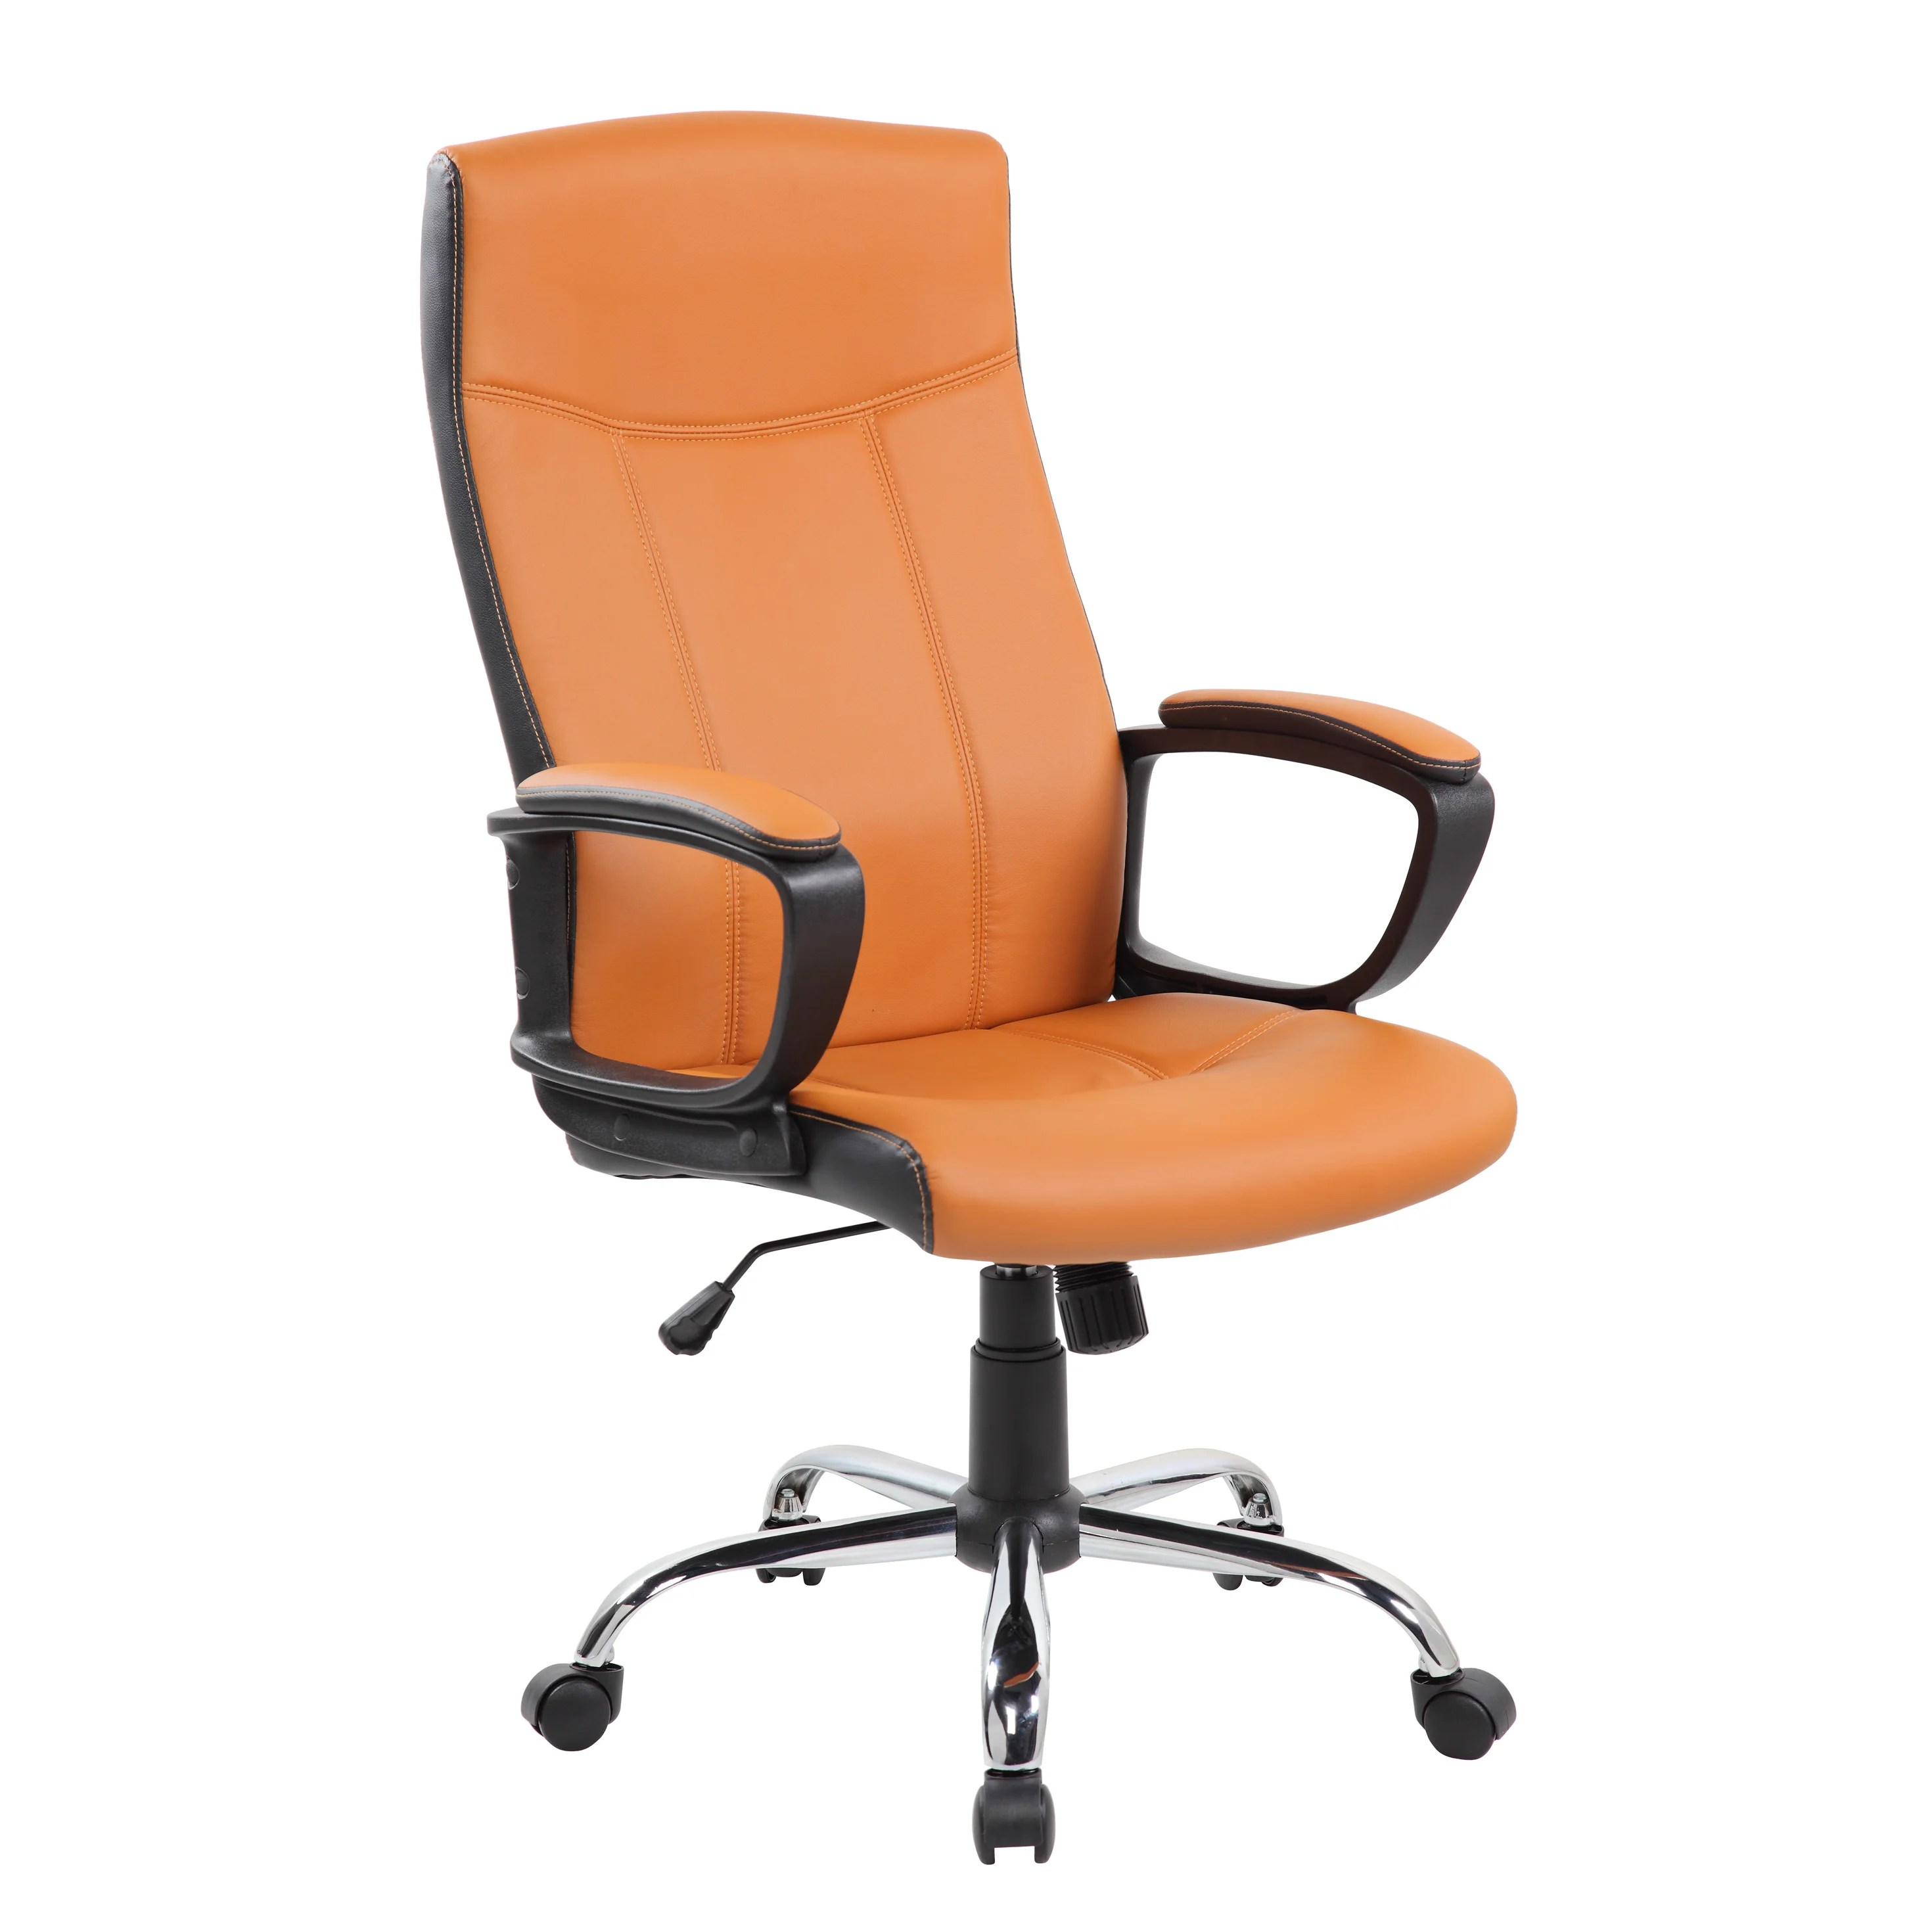 ergonomic chair jakarta camping chairs that fold up small office wayfair buy desk | tattoo design bild